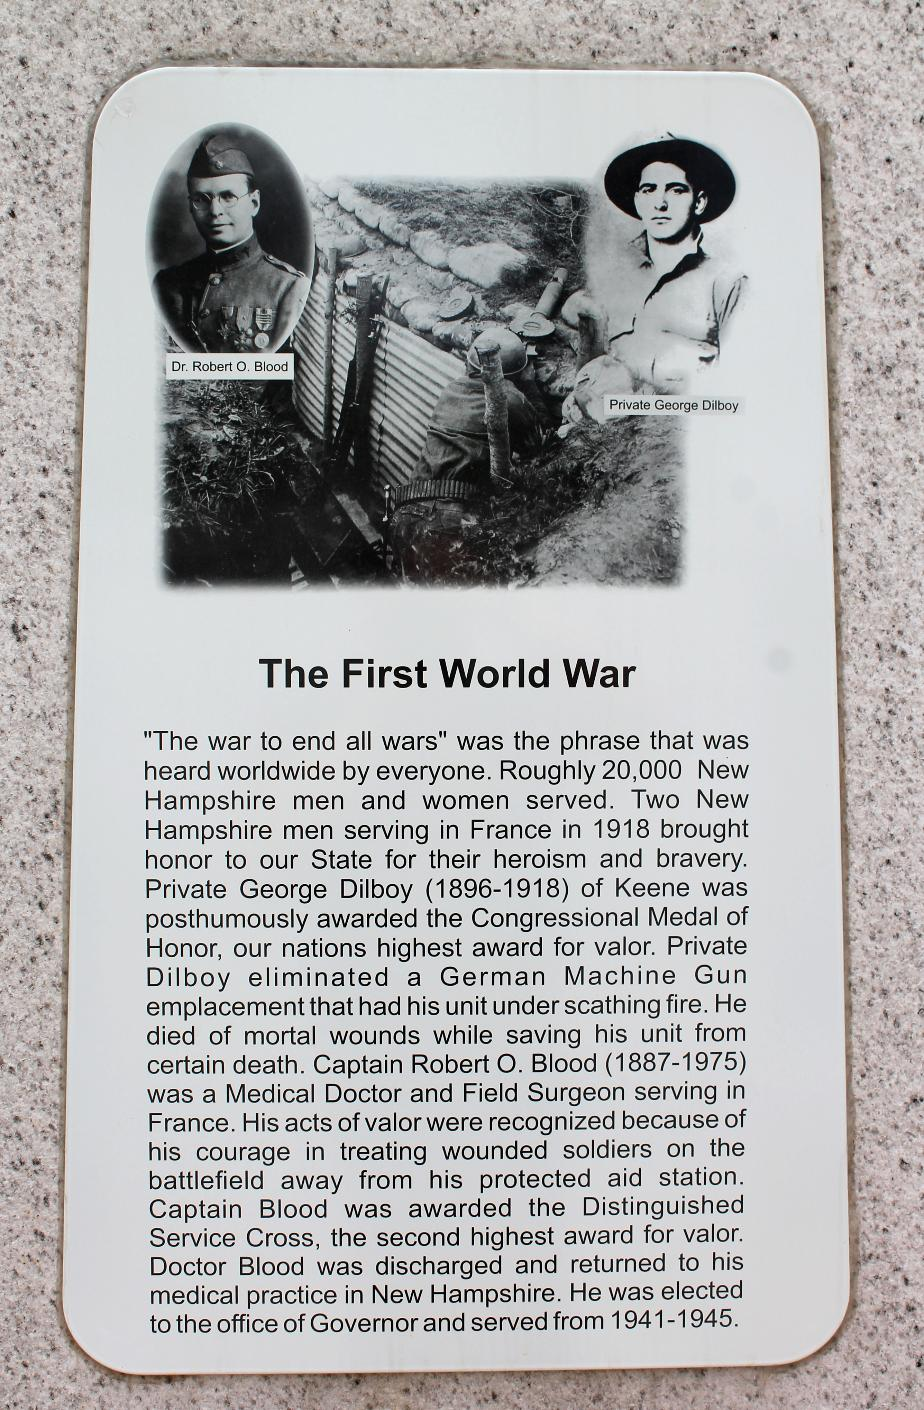 NH State Veterans Cemetery - The First World War